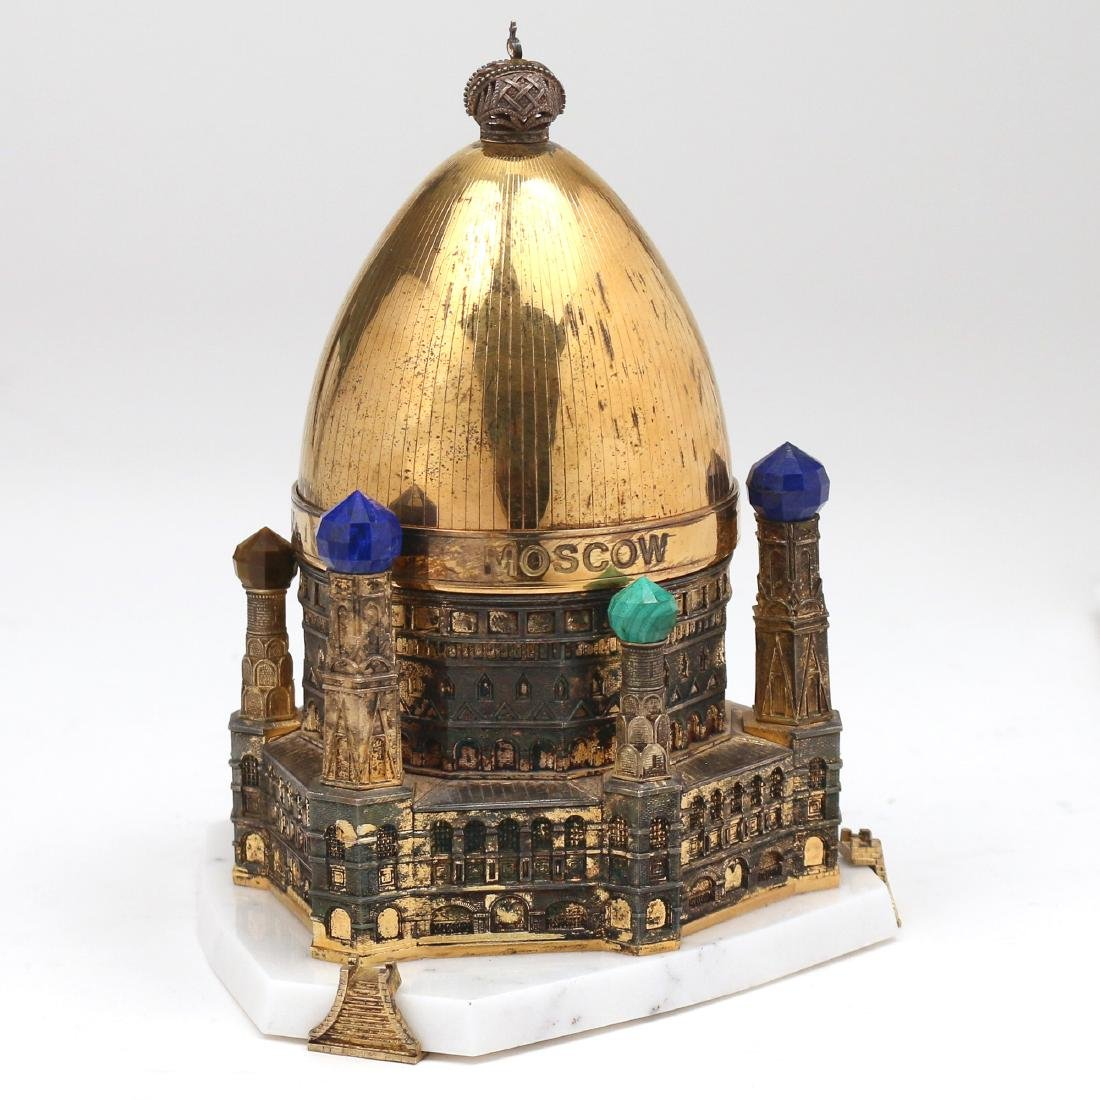 THEO FABERGE MOSCOW VERMEIL STERLING EGG